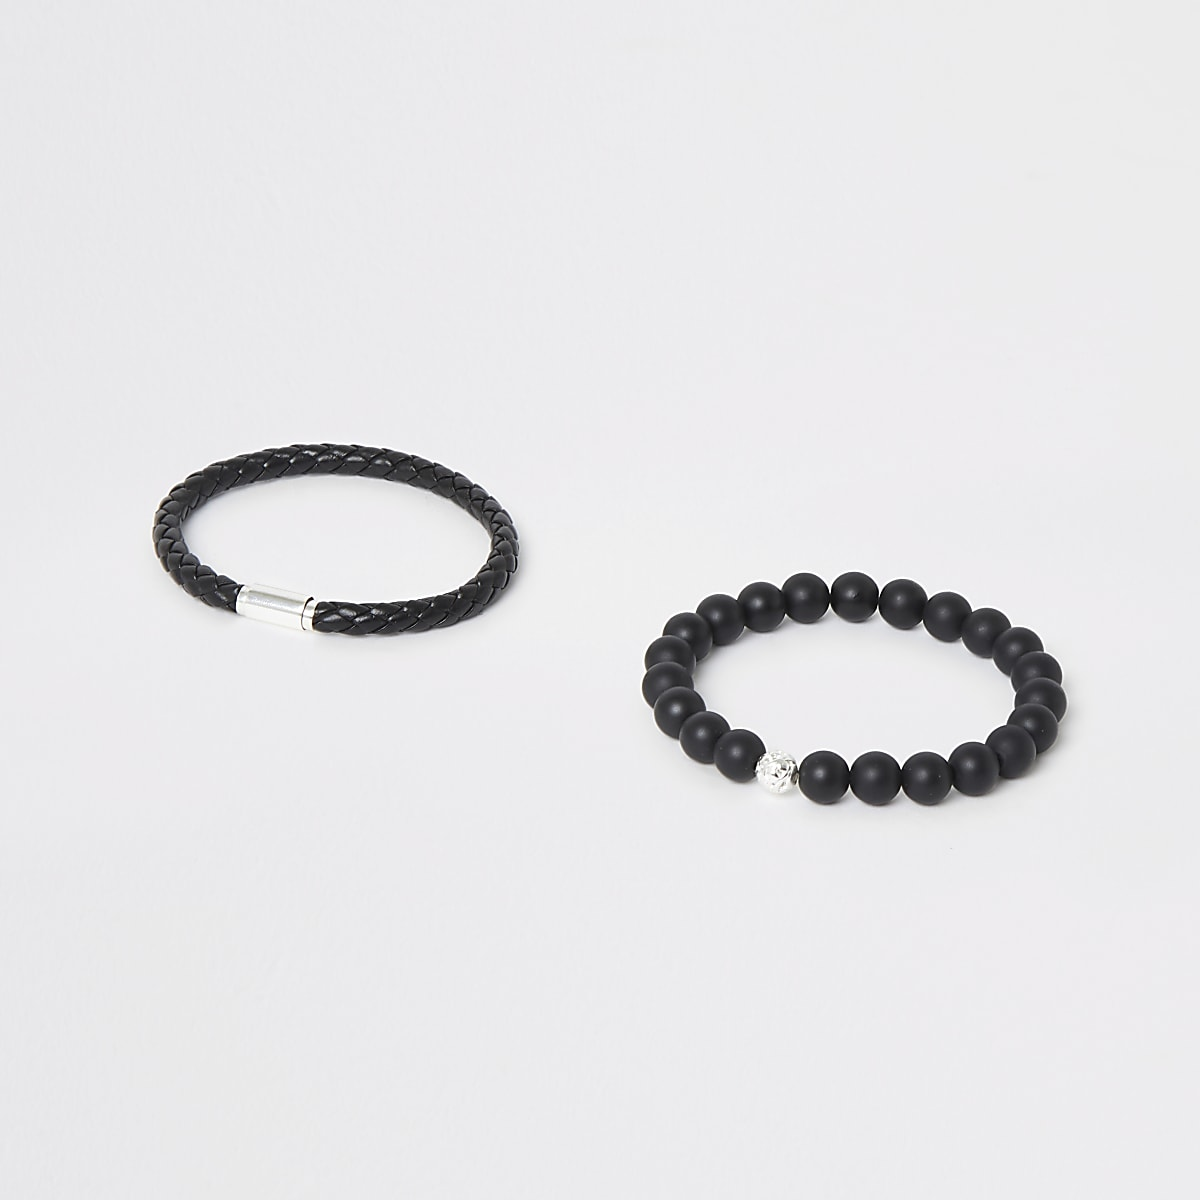 Black bead and rope bracelet 2 pack